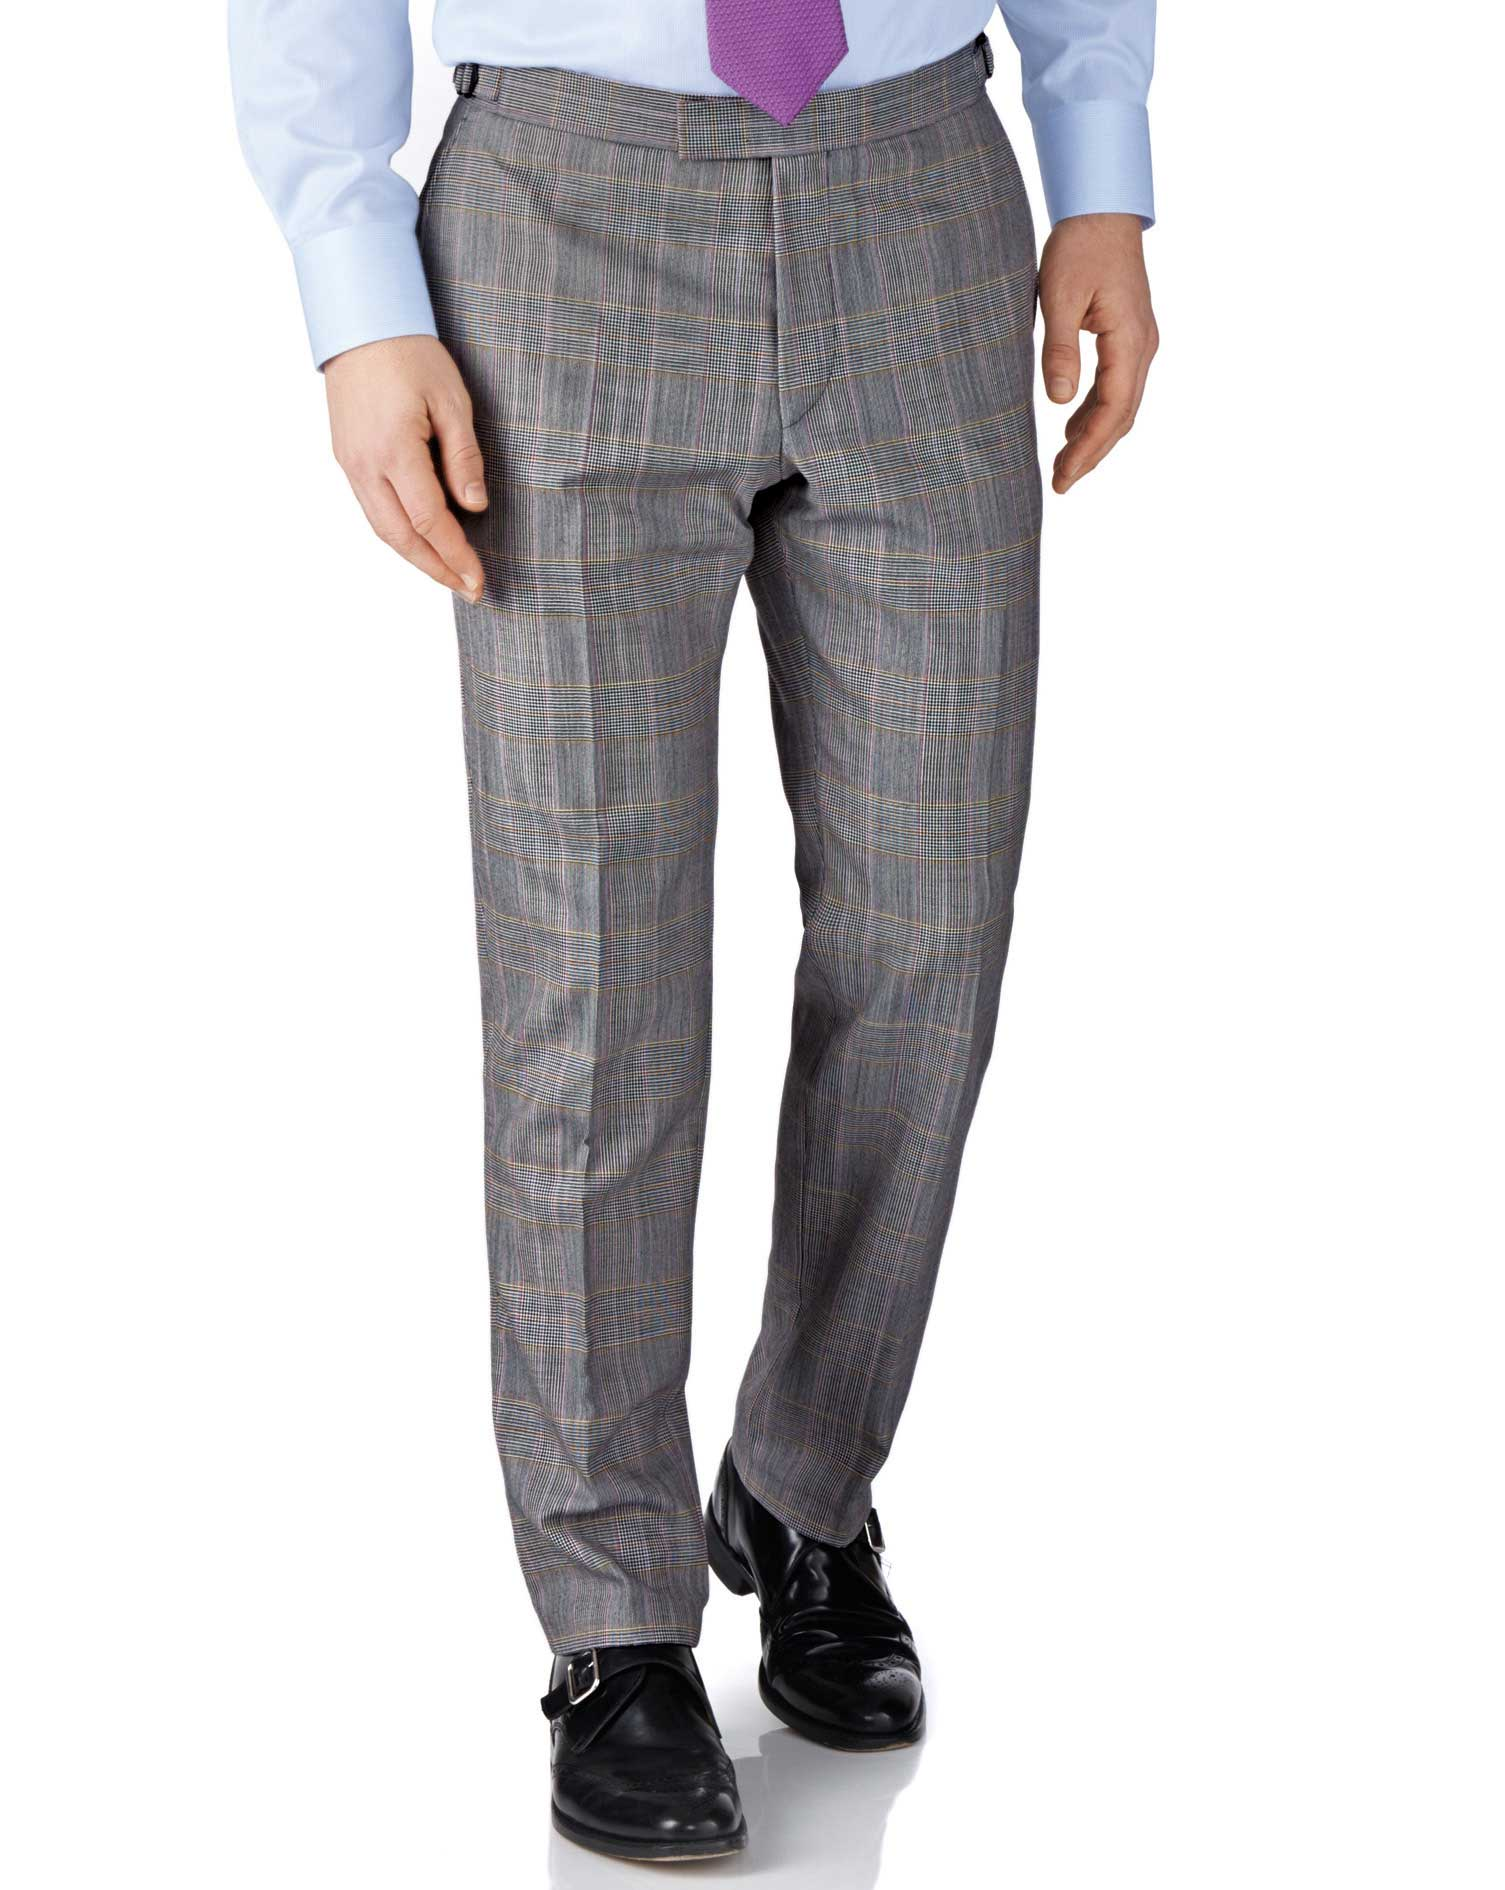 Grey check slim fit British Panama luxury suit pants